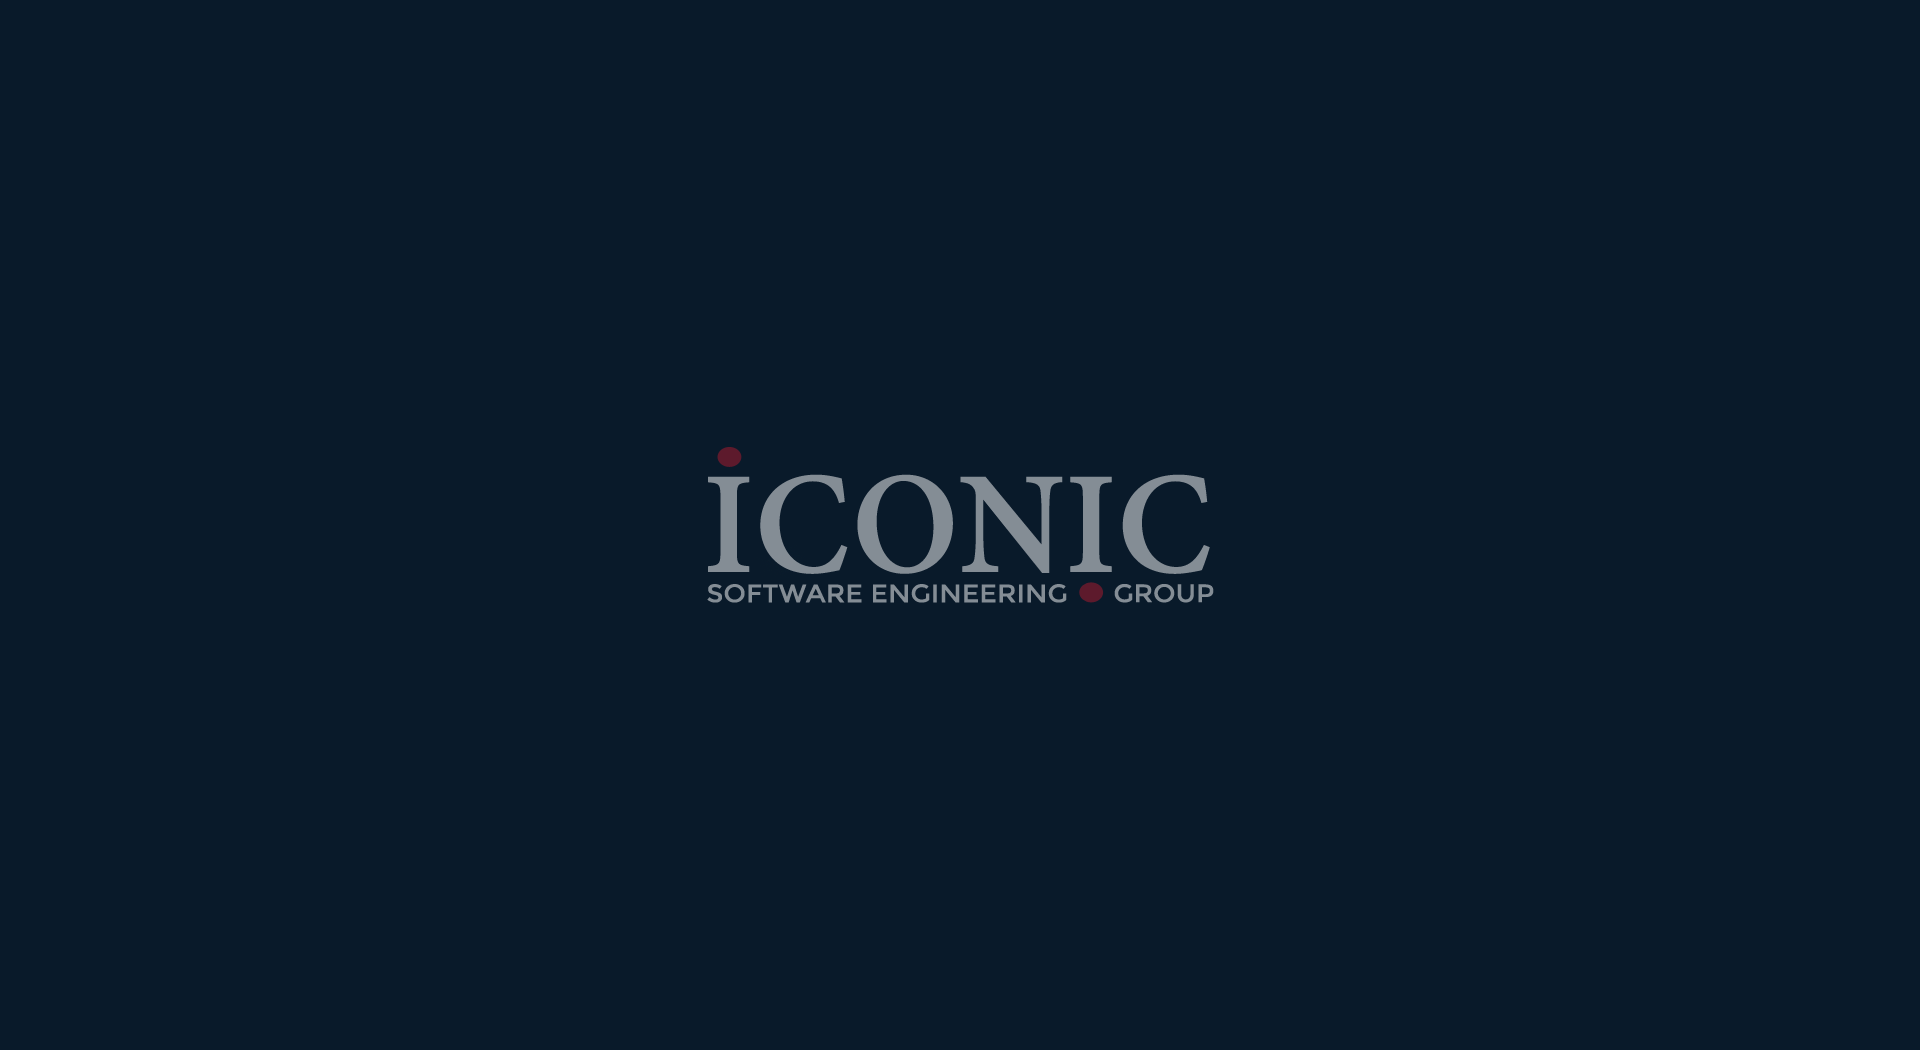 Iconic Srl - Soluzioni efficaci e strategiche - Web Agency a Formigine - Modena